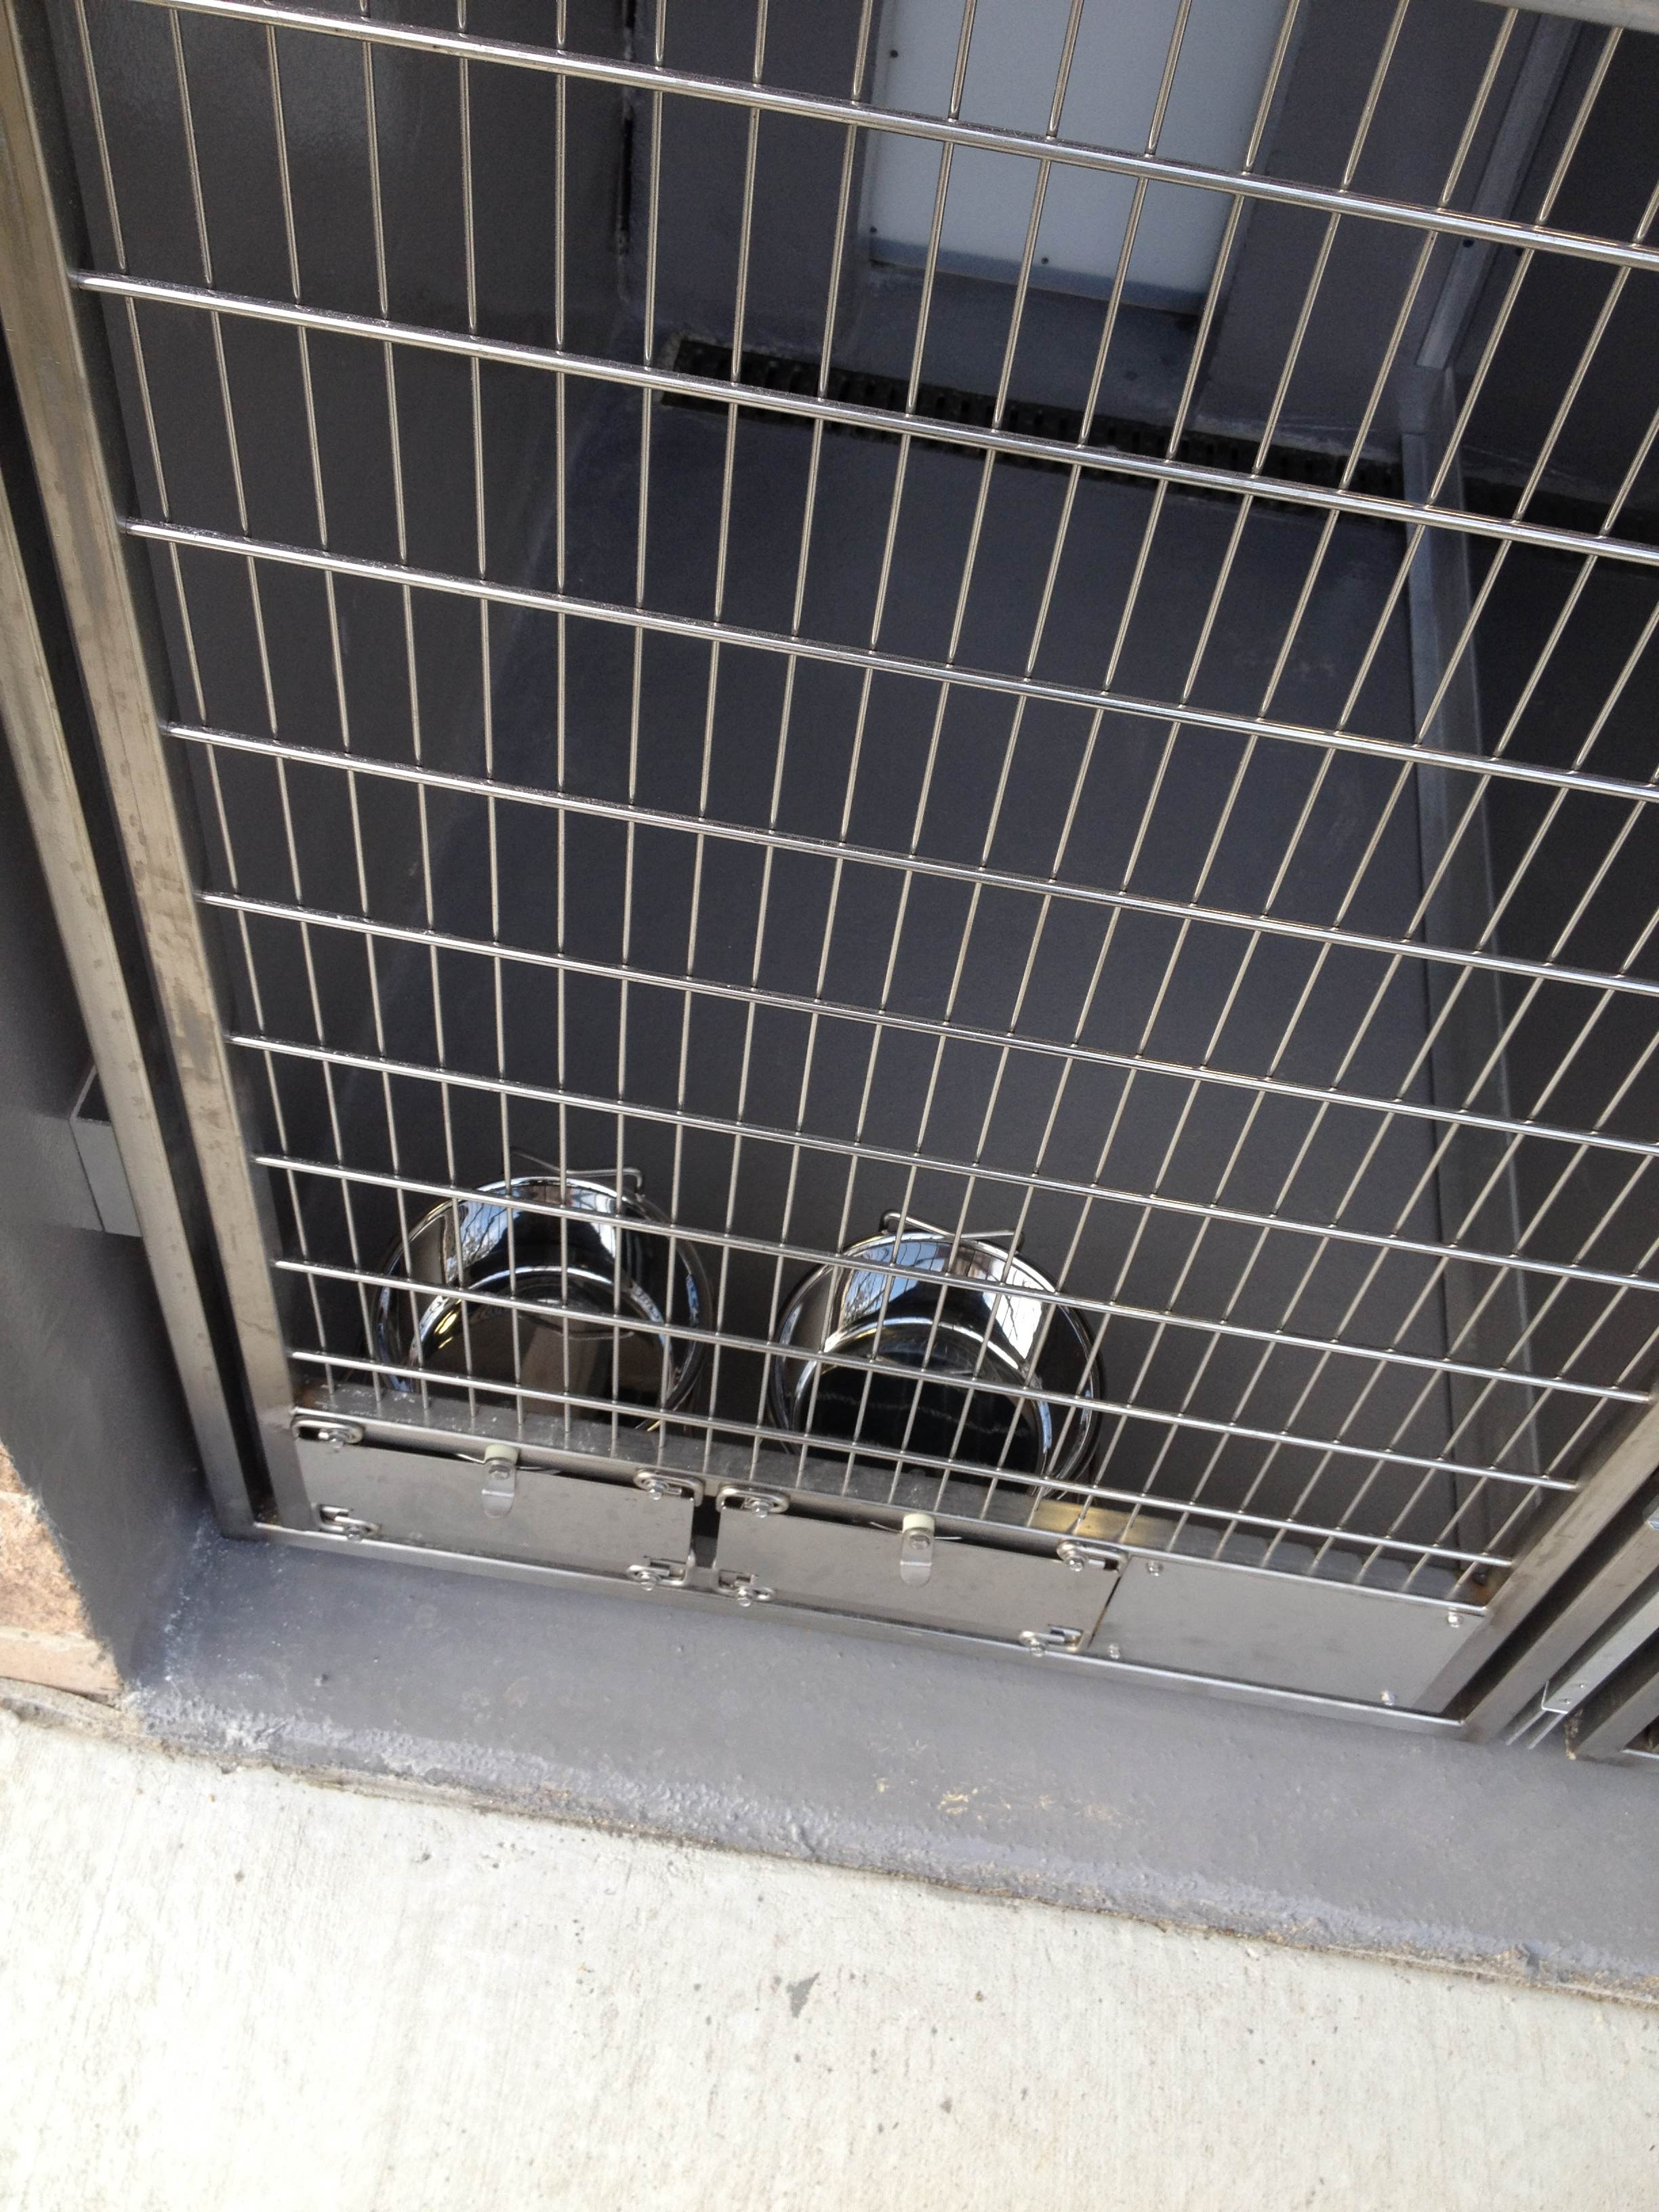 Outdoor Animal Shelter Cage